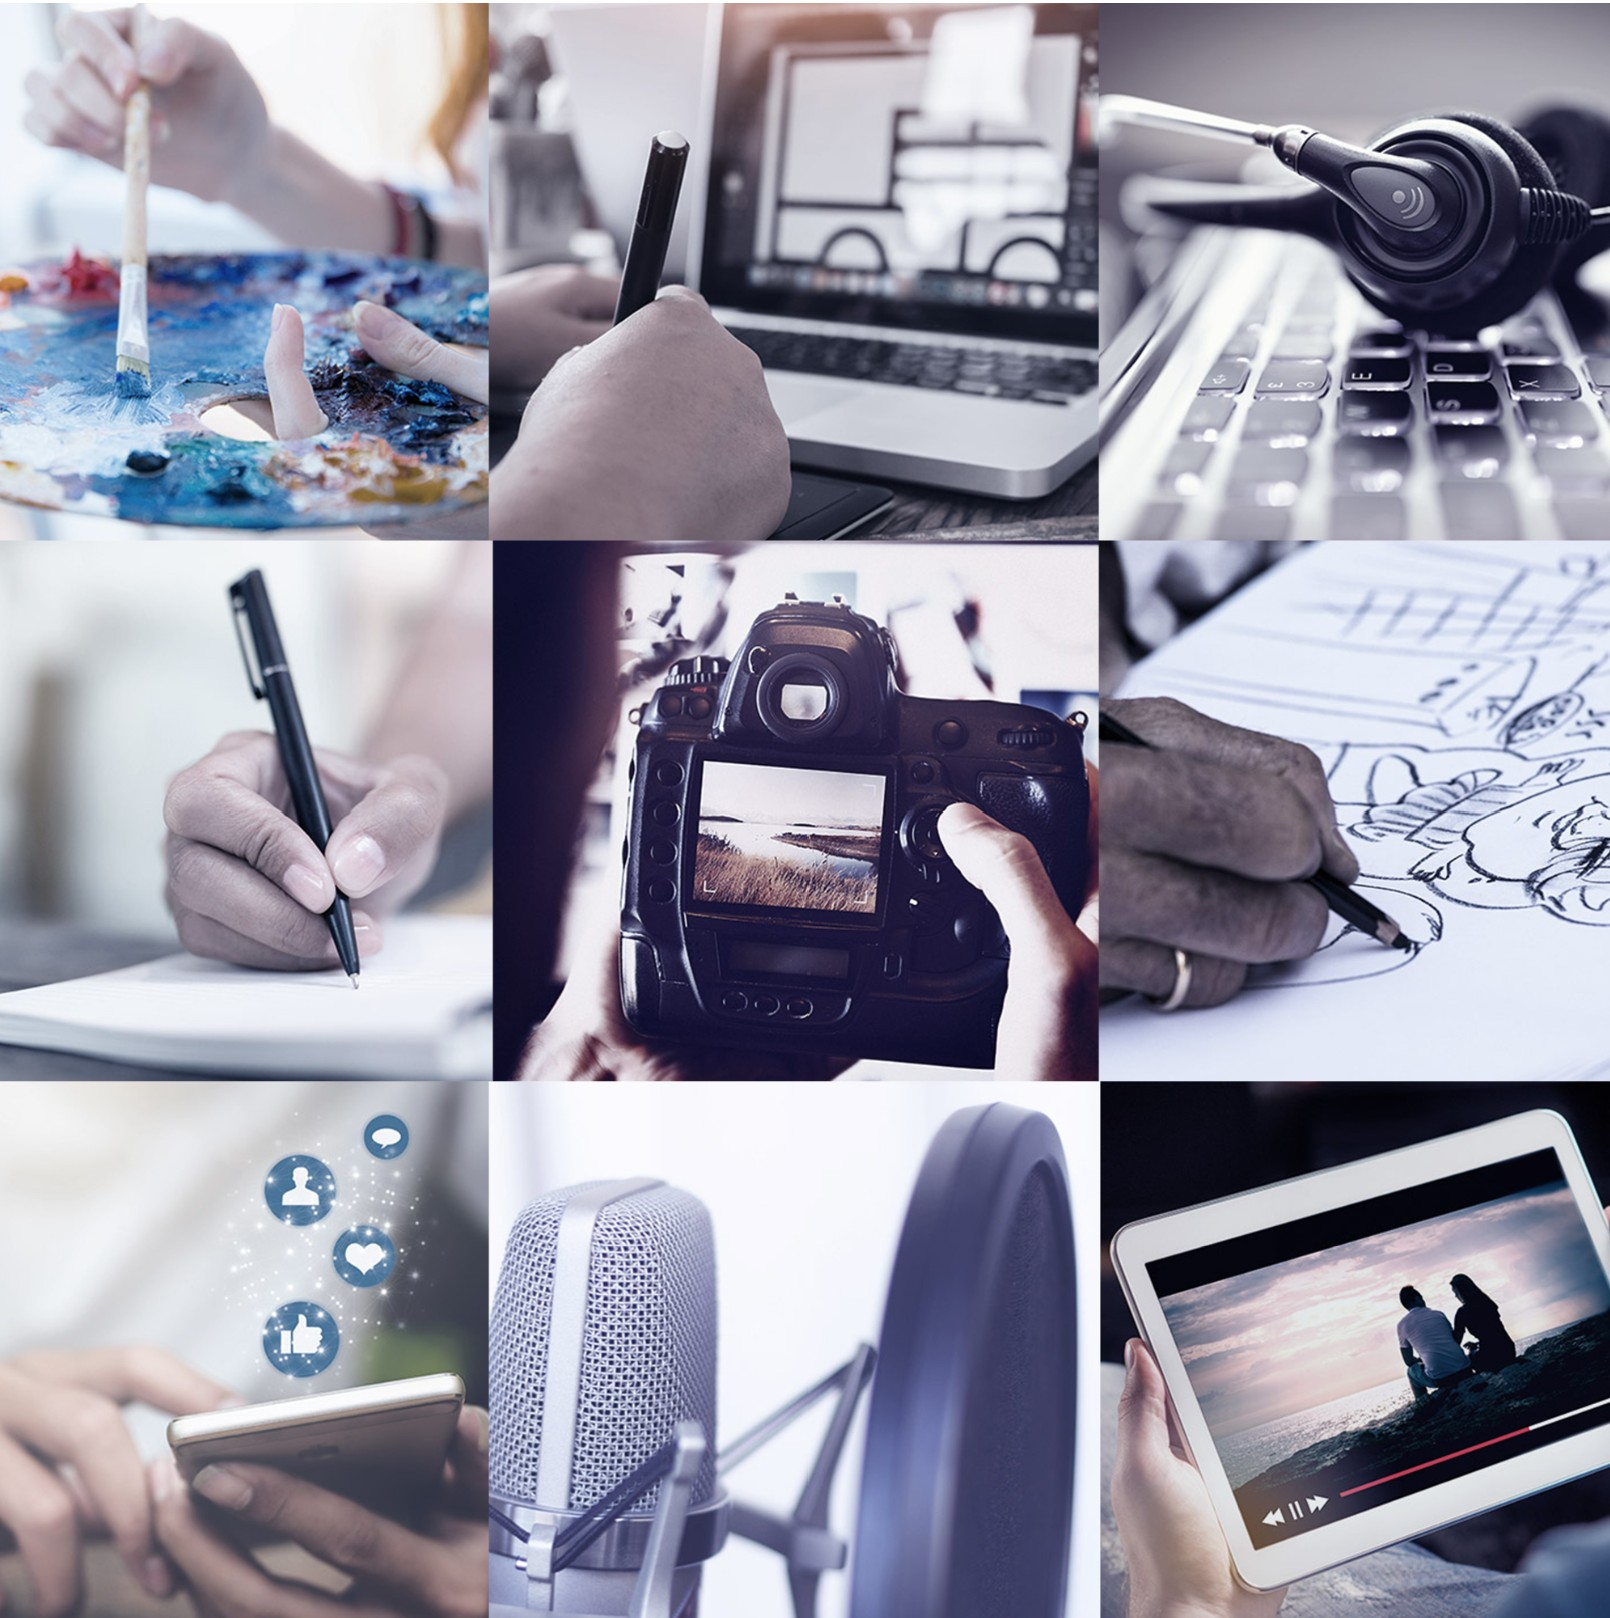 Promotion: Where can you find talented freelancers that share your passion?